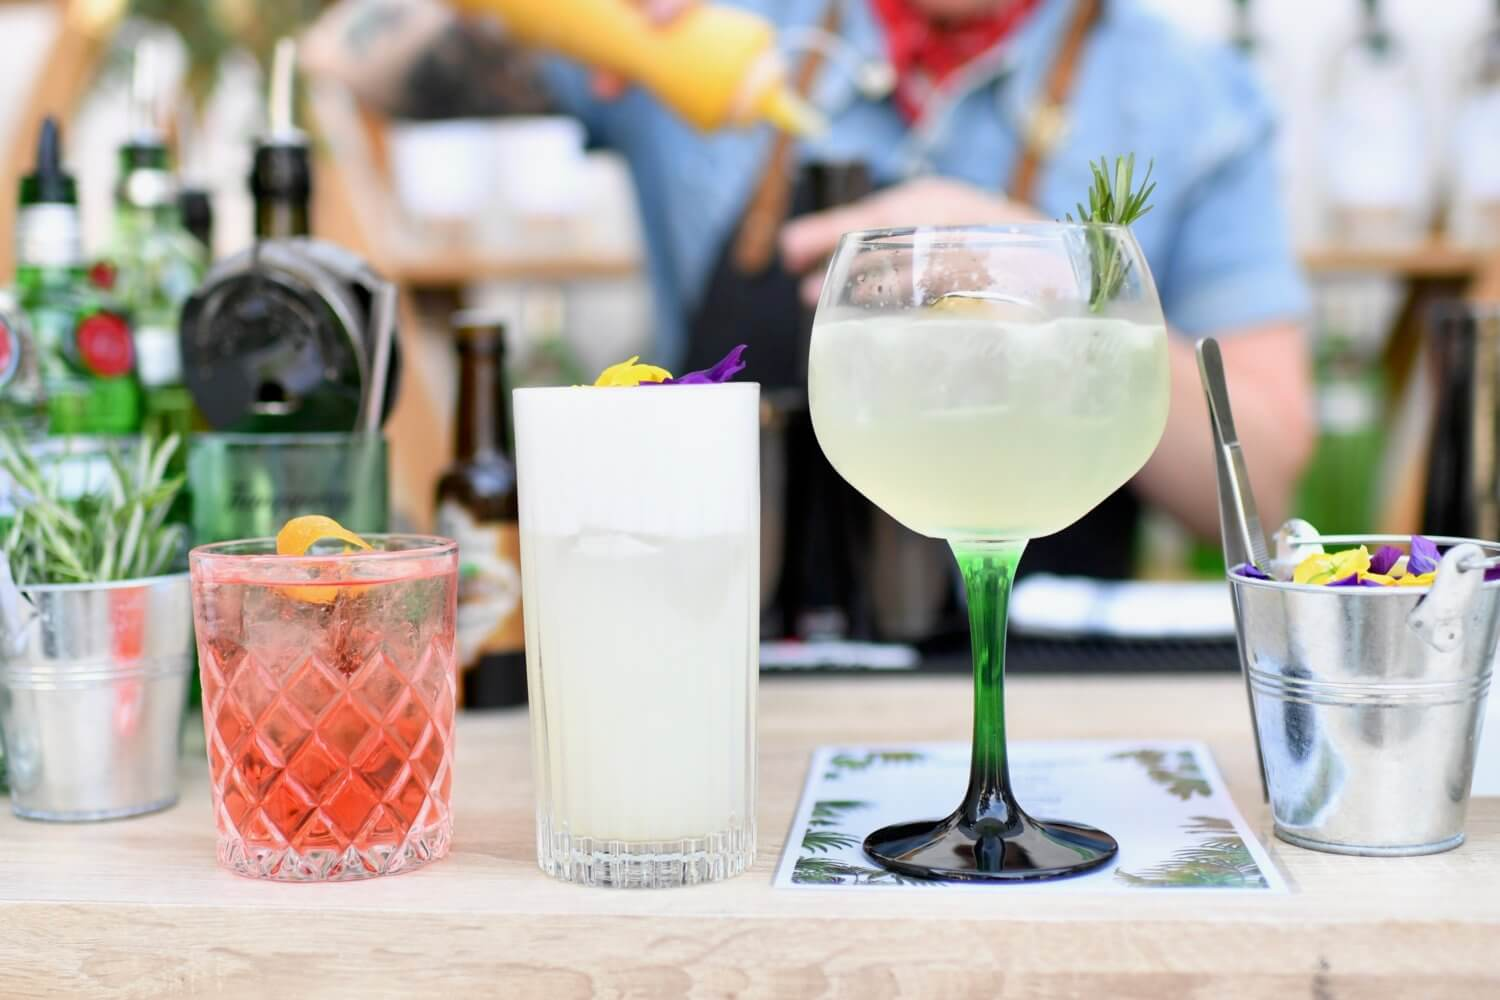 Meeting Kaitlyn Stewart - Best Barkeeper in the World & 4 Tanqueray Garden Cocktail recipes